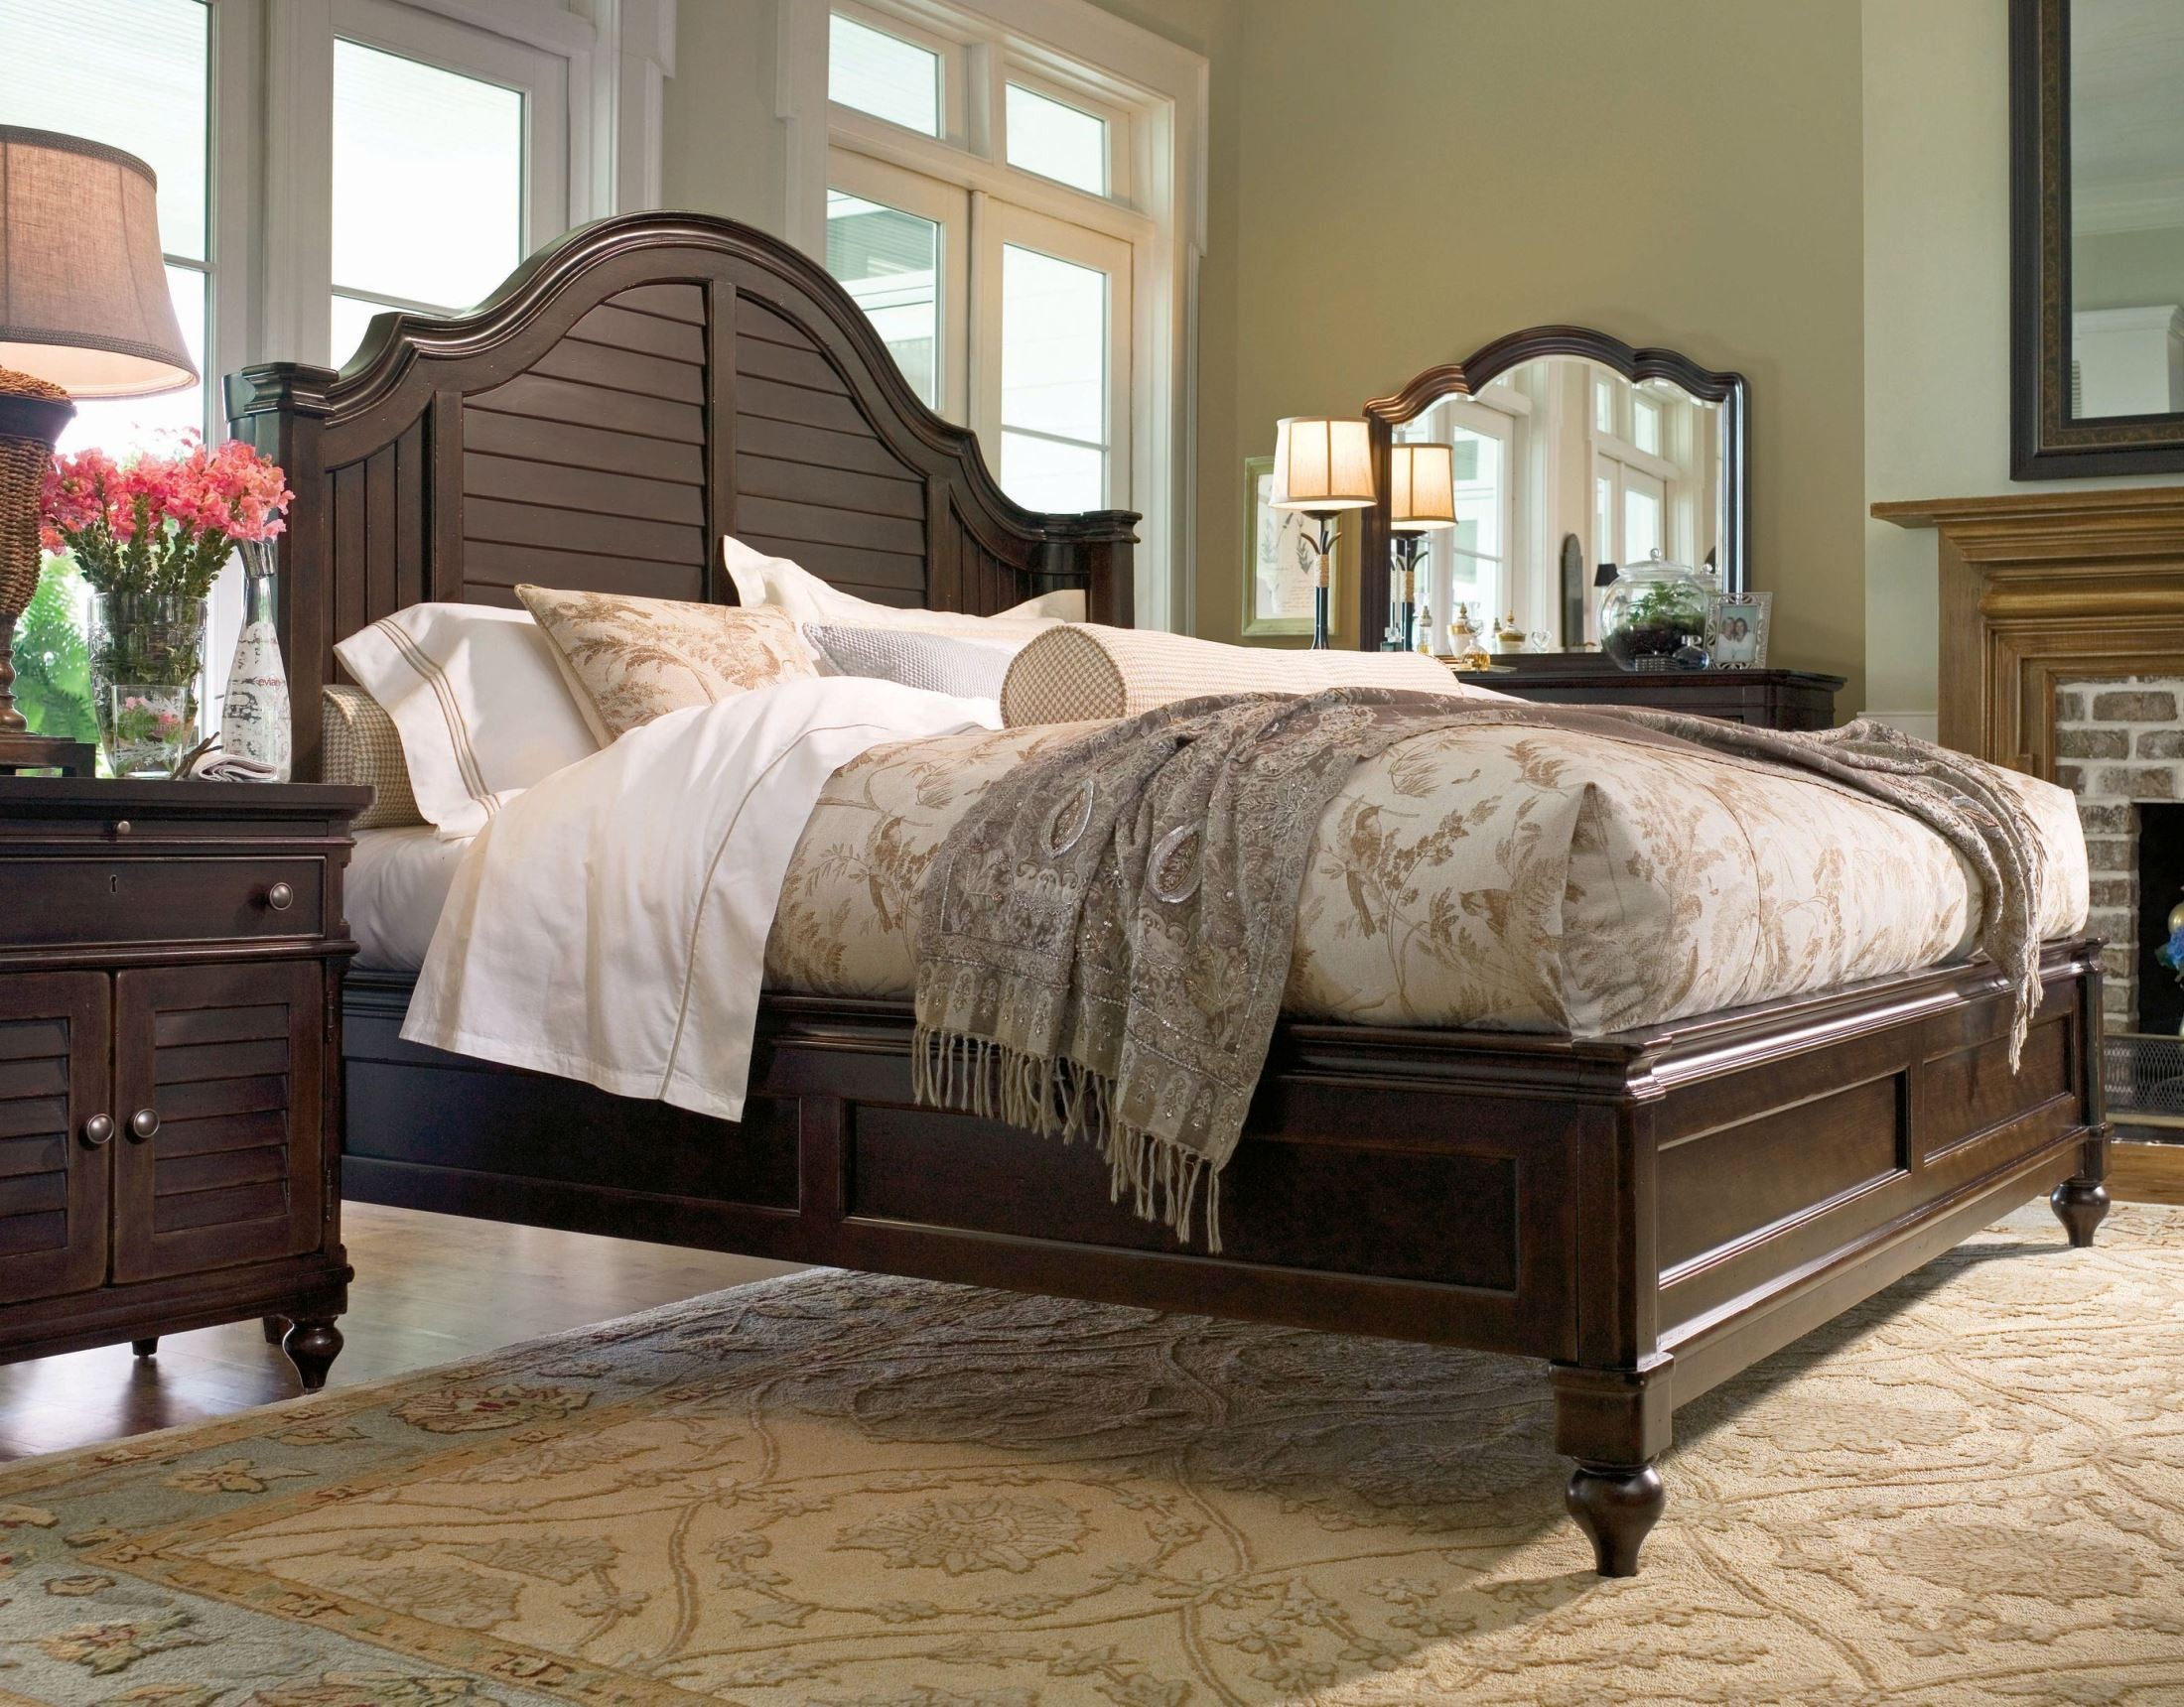 Paula Deen Home Tobacco Steel Magnolia King Bed From Paula Deen 932220b Coleman Furniture